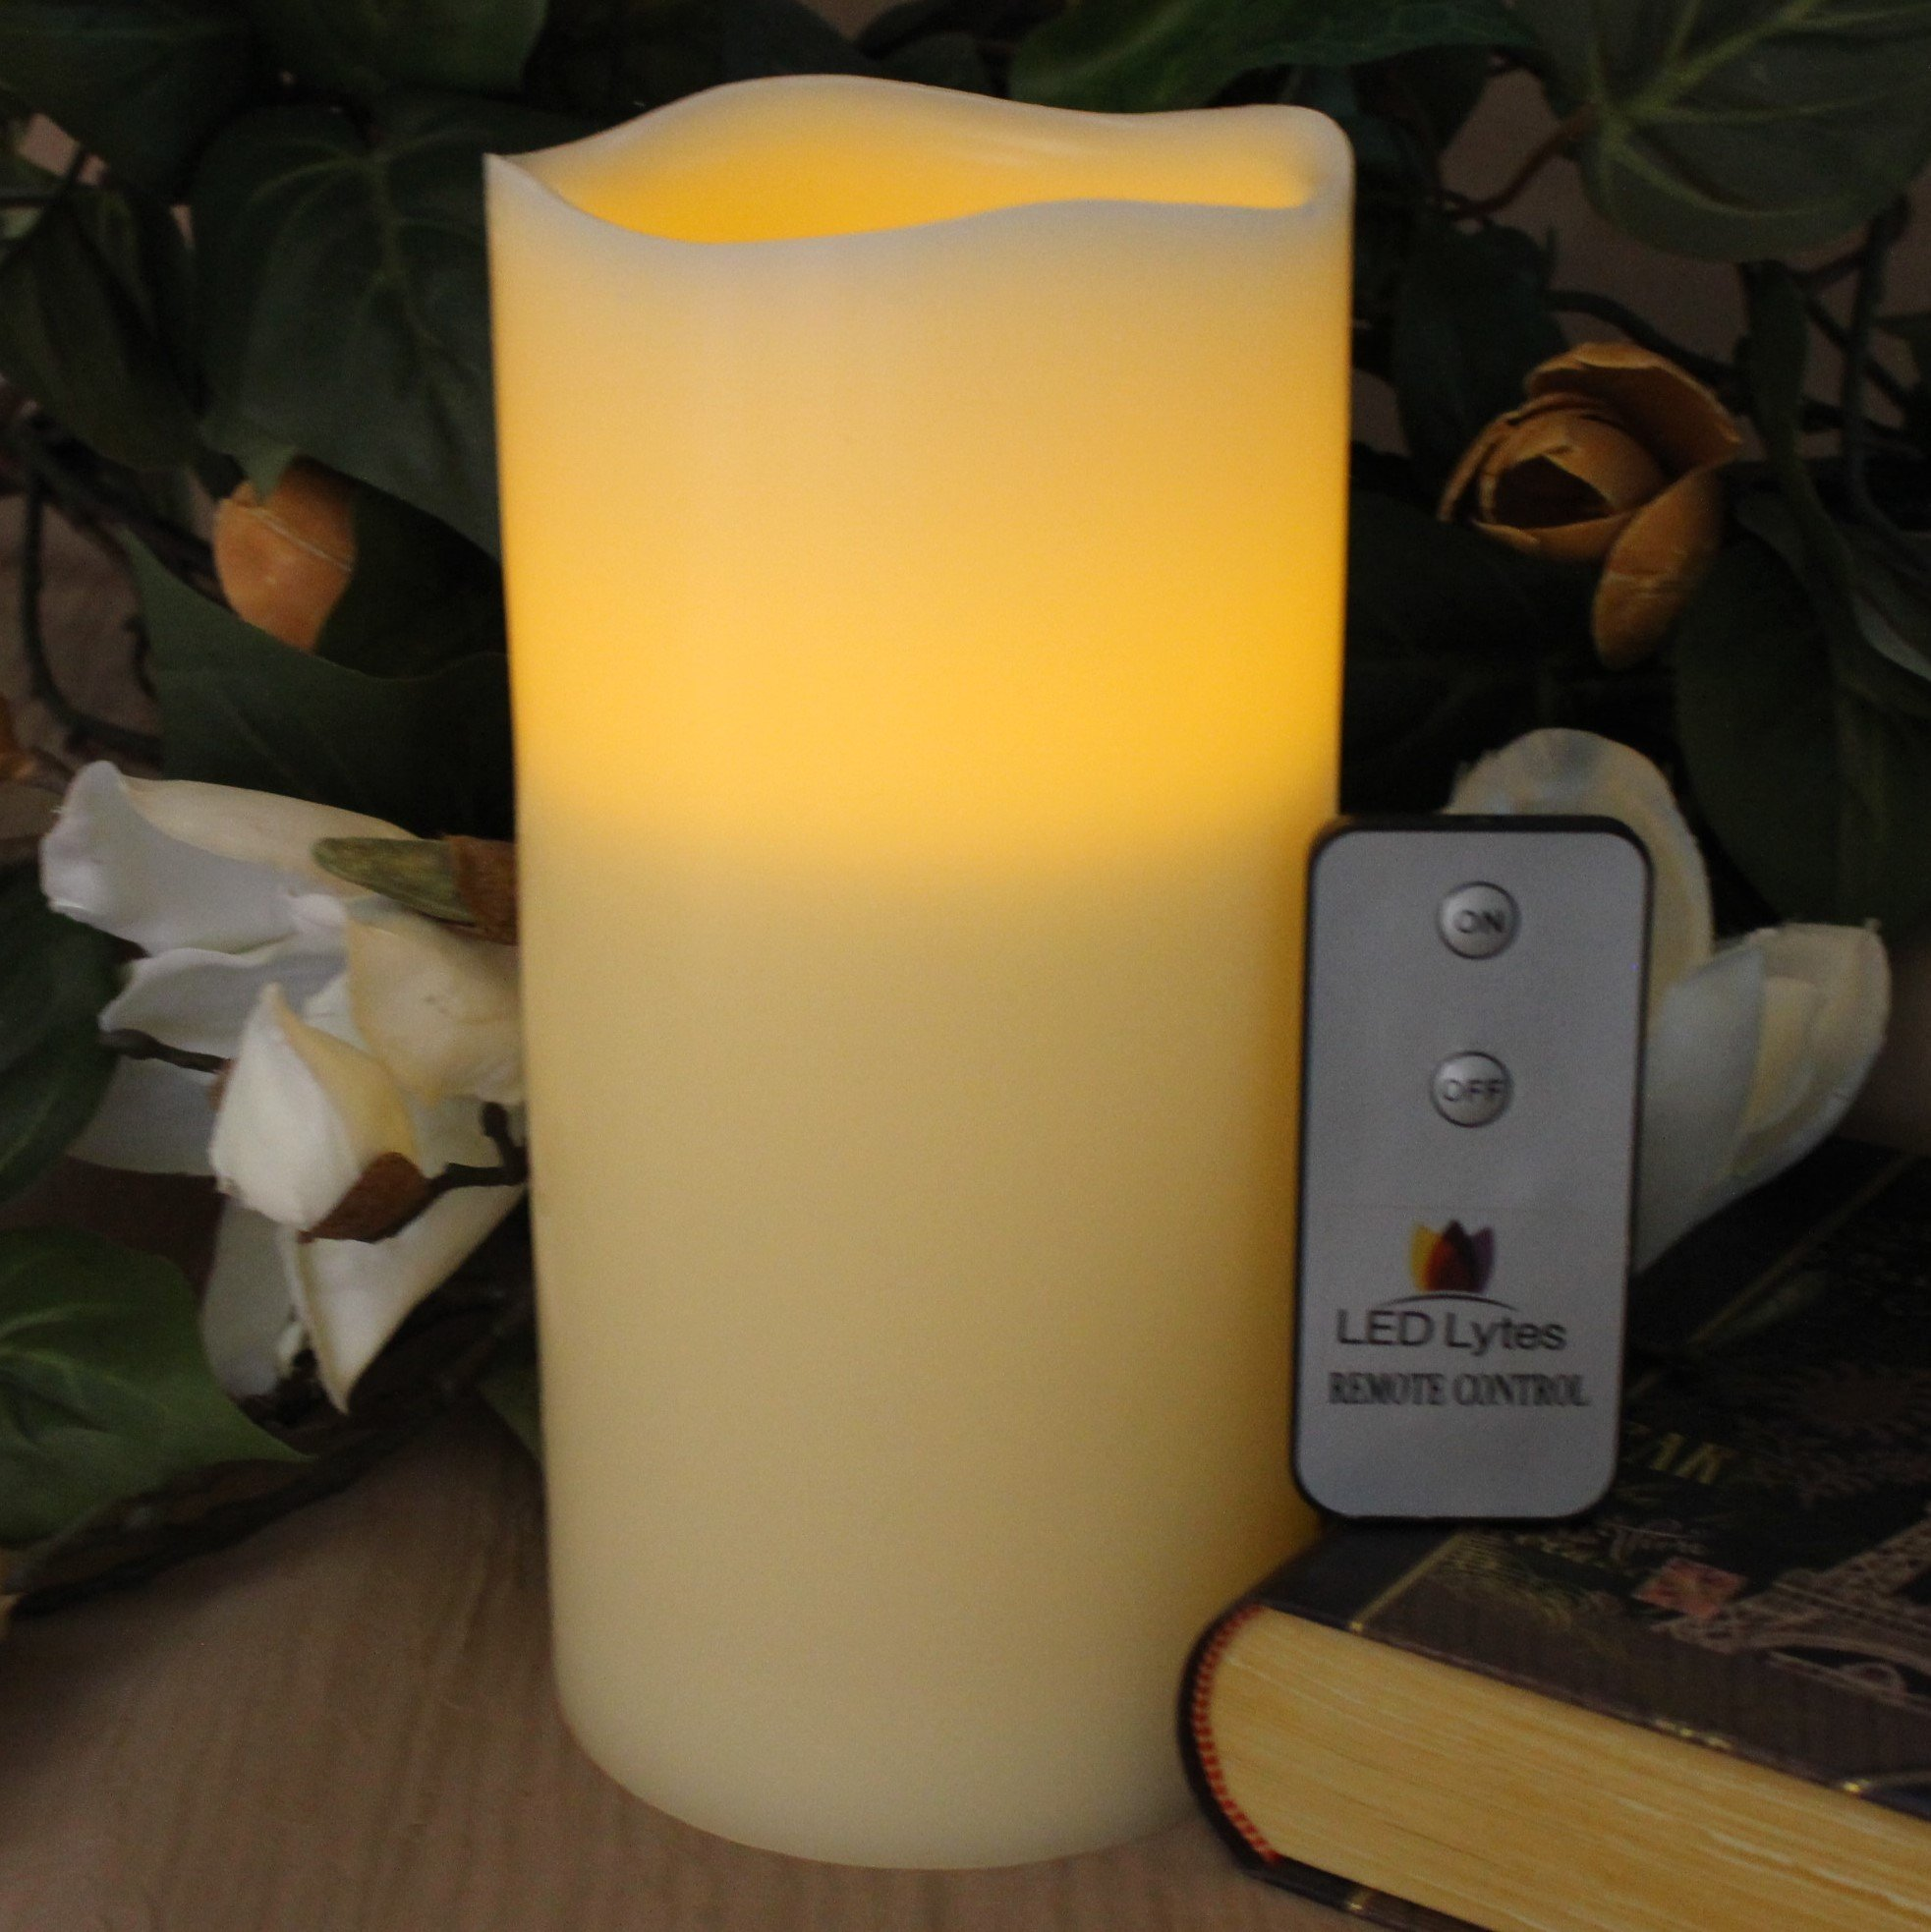 LED Lytes Flameless Candle Flickering - ONE Amber Yellow Pillar Battery Operated with Remote for Parties Weddings and Decorations by LED Lytes (Image #4)